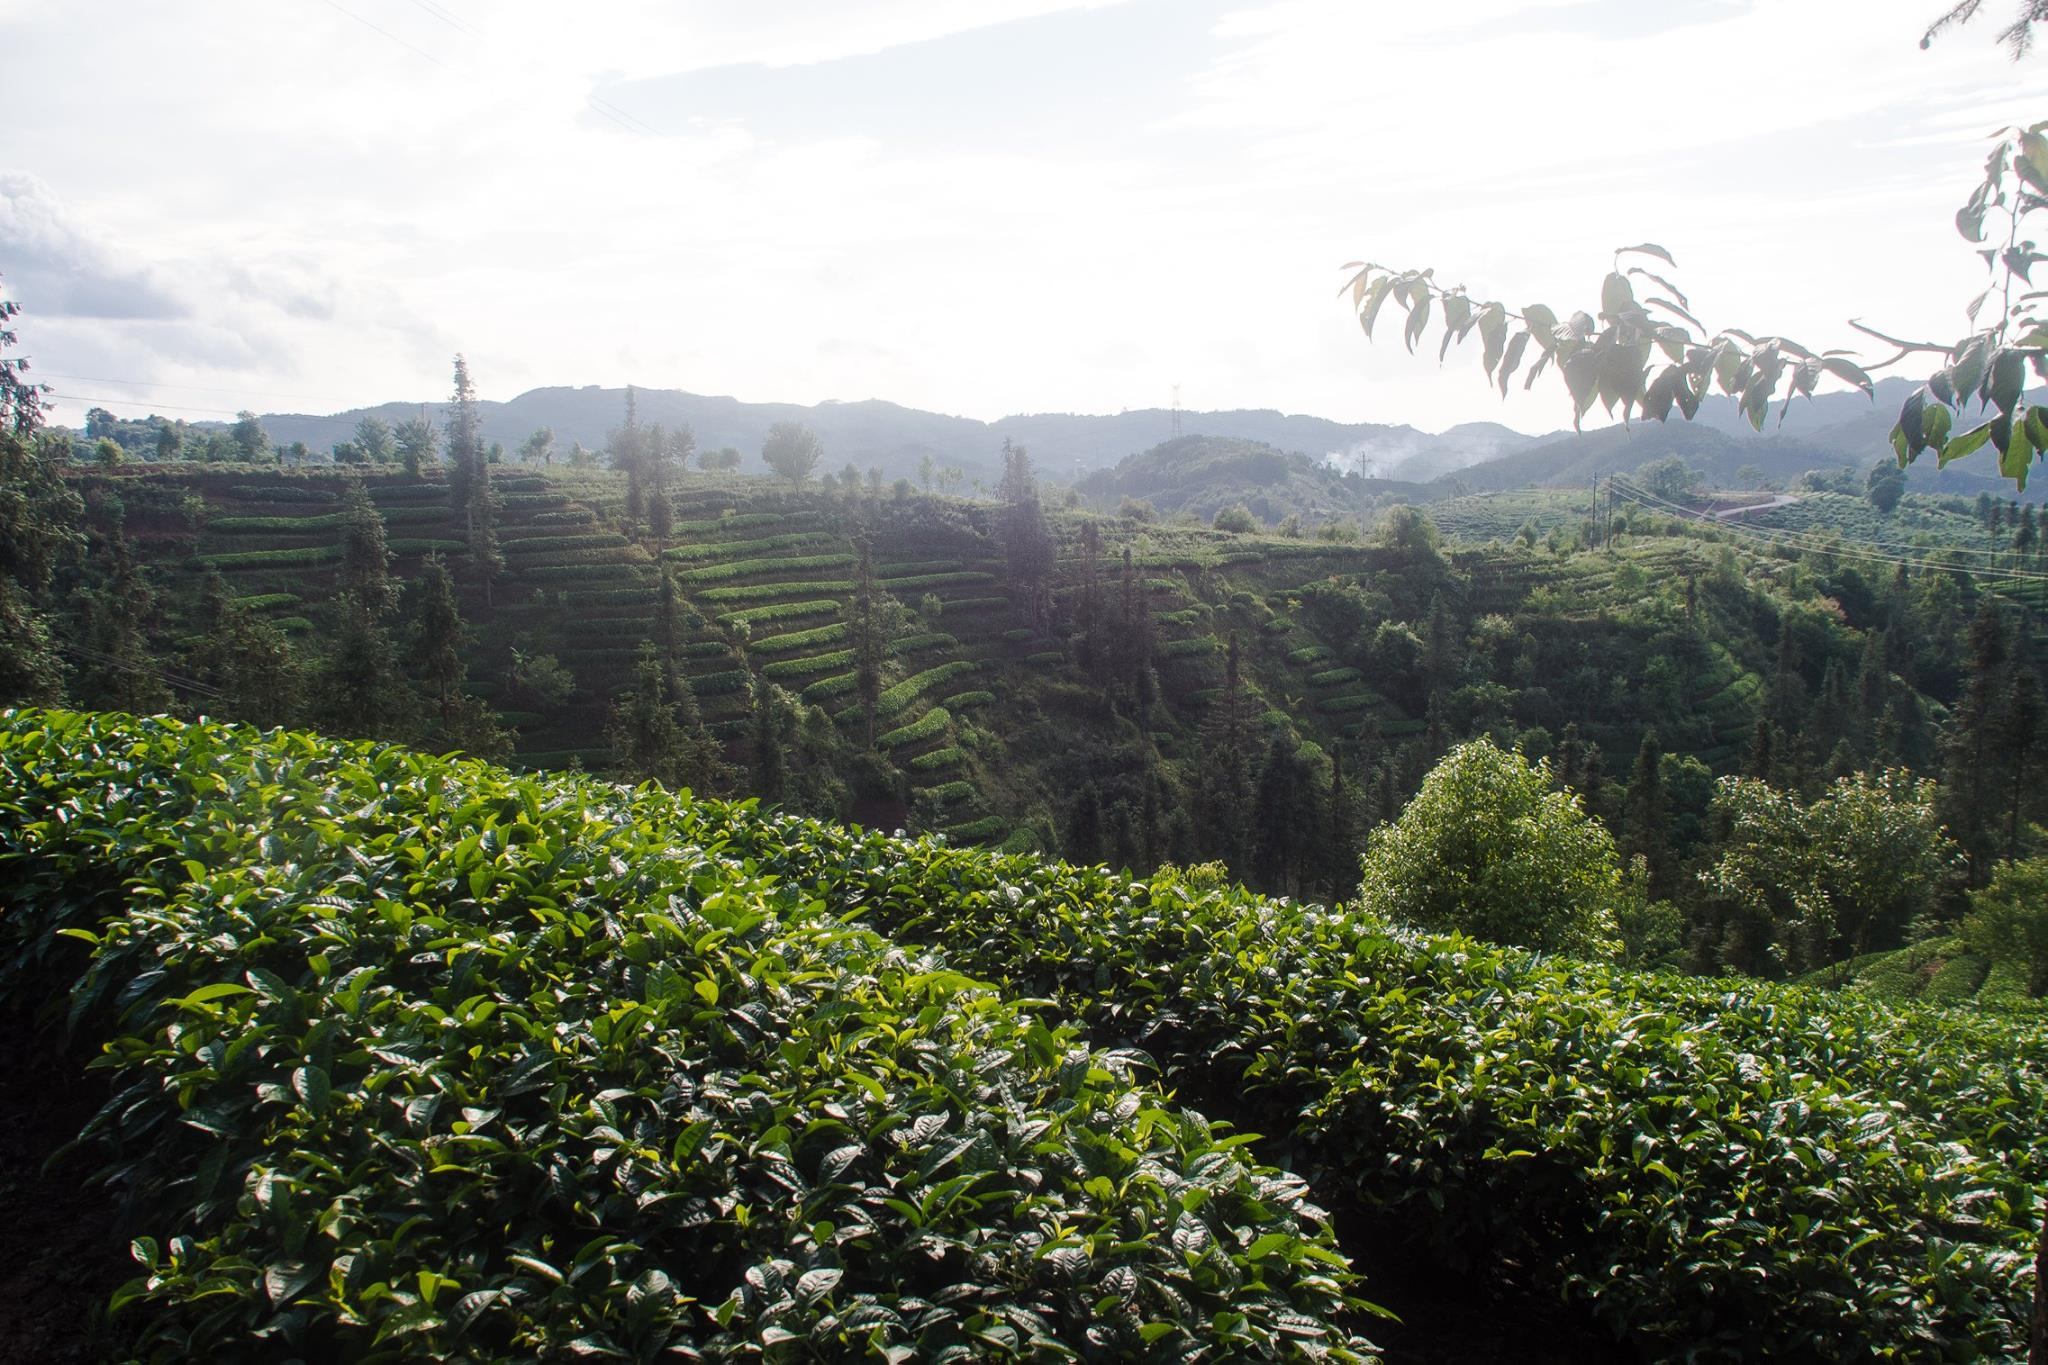 The tea hills at Pu'er, where a lot of our black teas are from